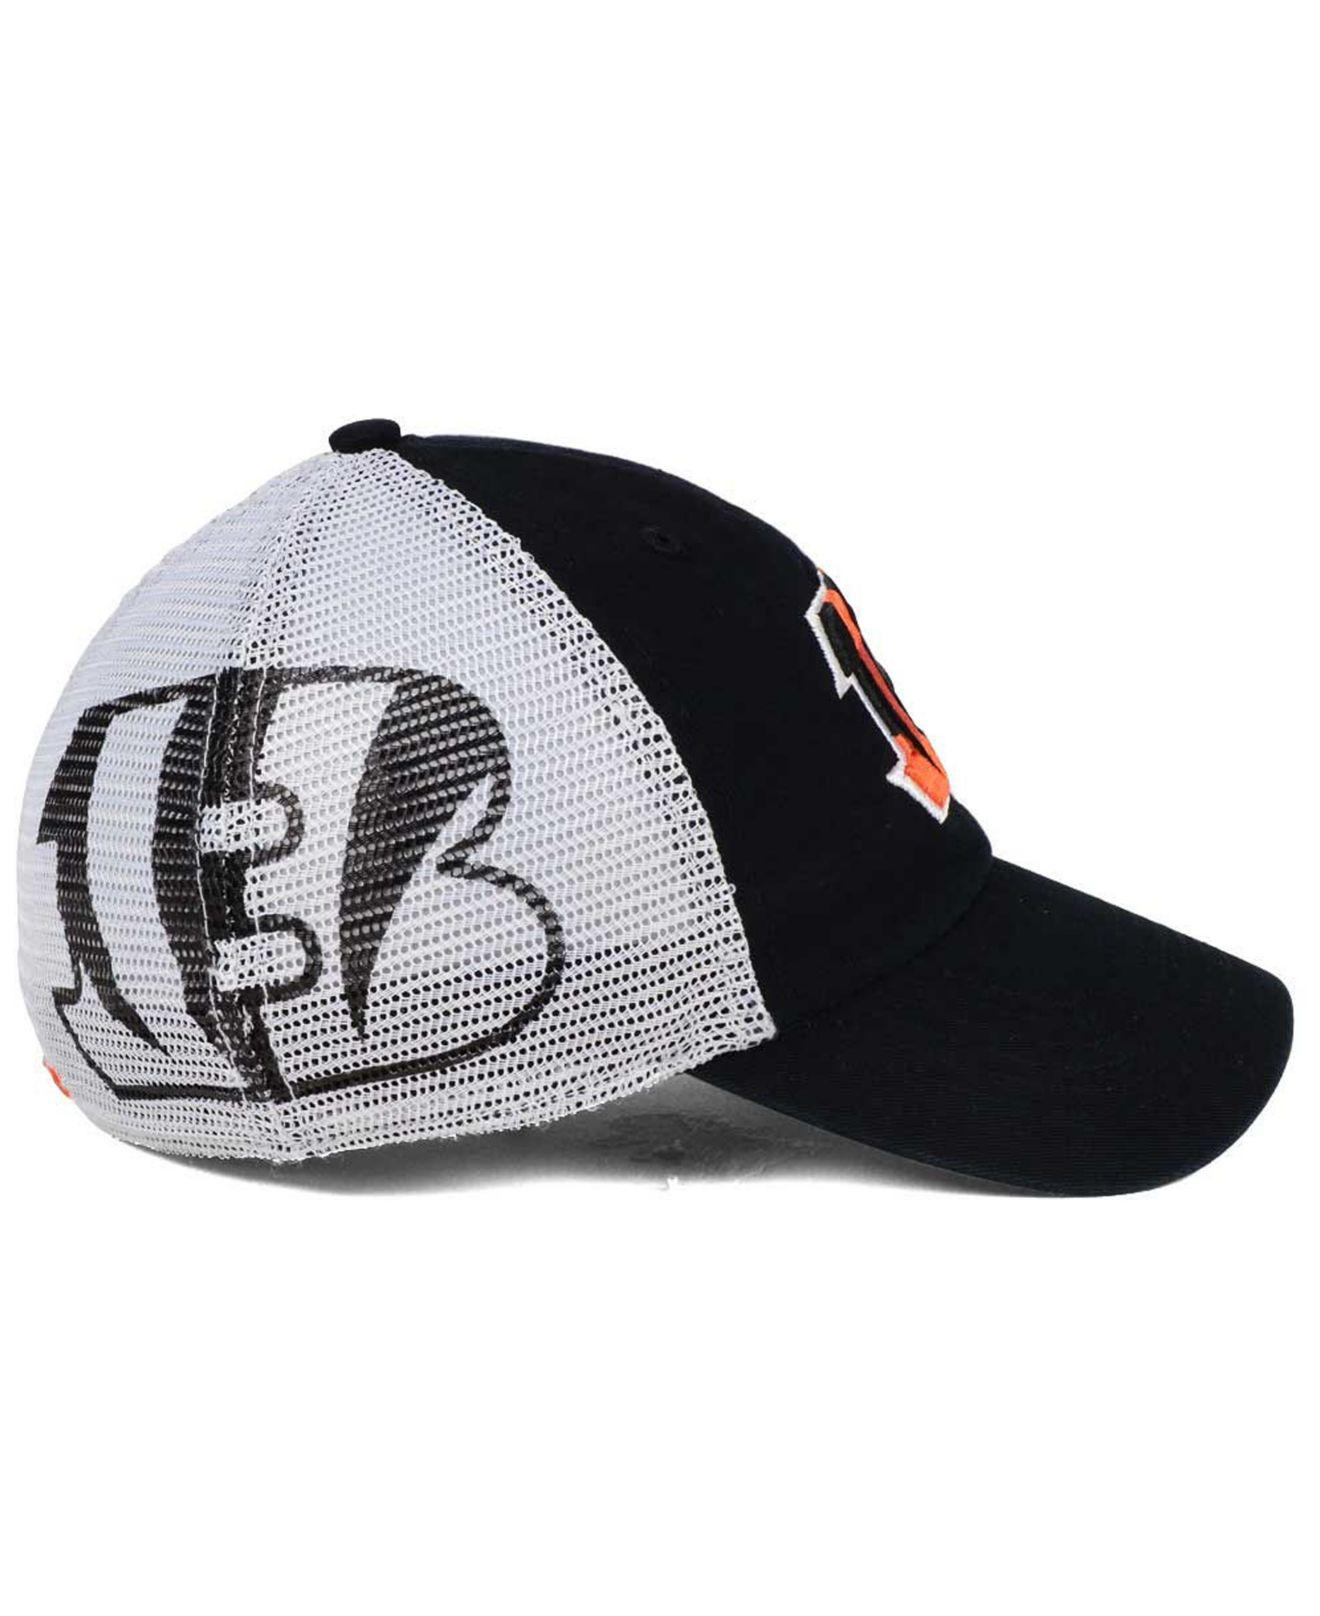 size 40 8af4f 9c441 ... australia 47 brand black deep ball mesh closer cap for men lyst. view  fullscreen 5e778